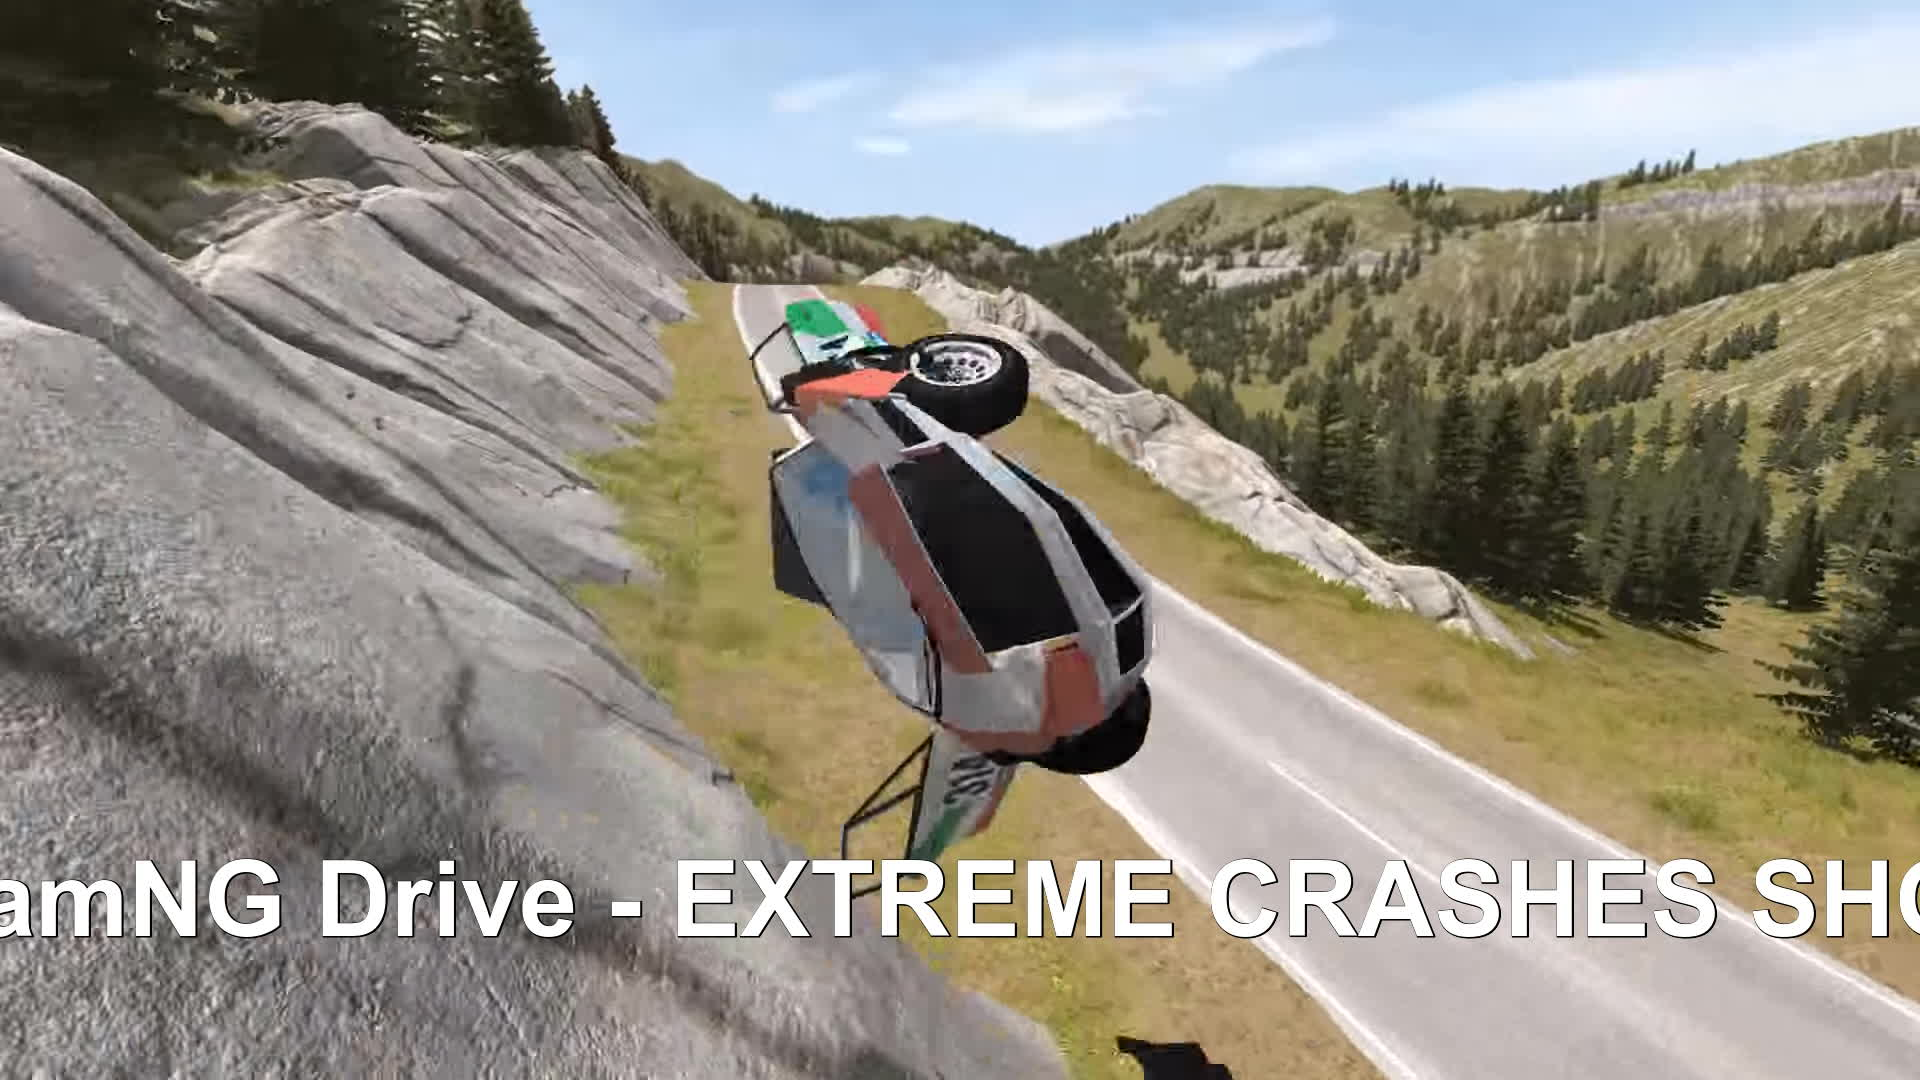 beamng, beamng drive, beamng drive crashes, BeamNG Drive - EXTREME CRASHES SHOW GIFs